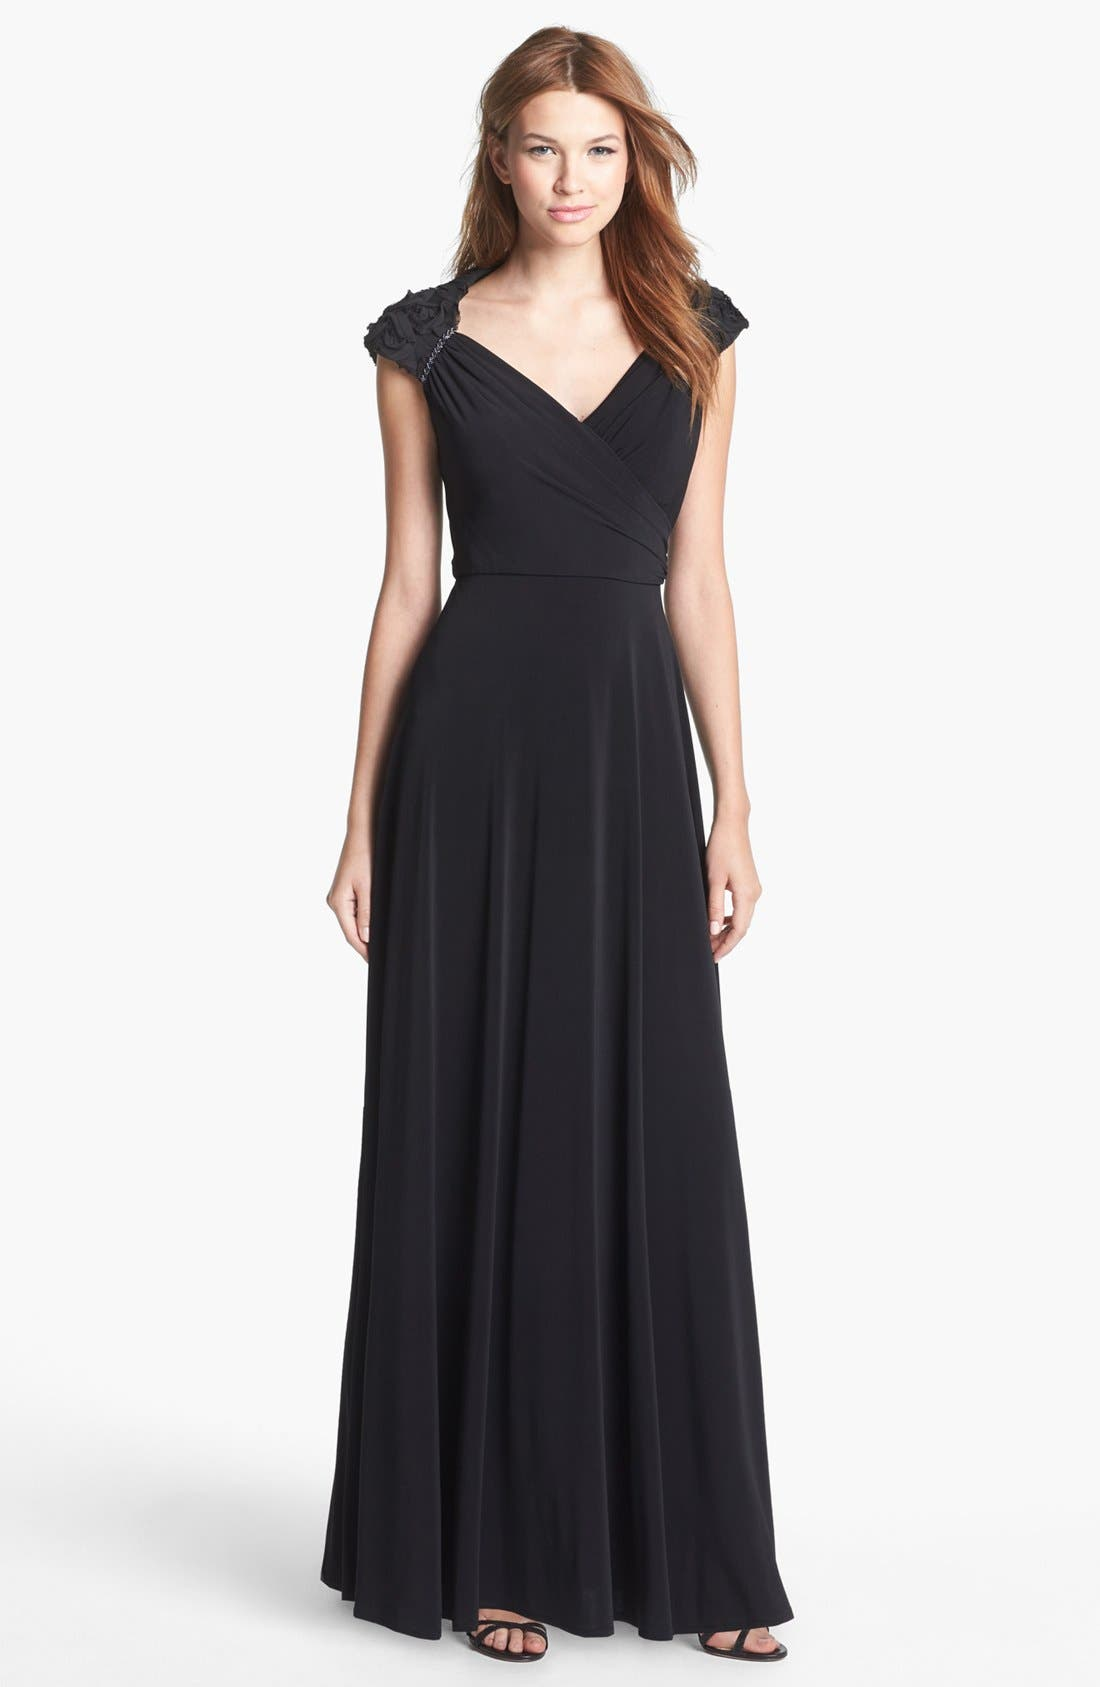 Alternate Image 1 Selected - Patra 'Queen Anne' Ruffle Detail Jersey Dress